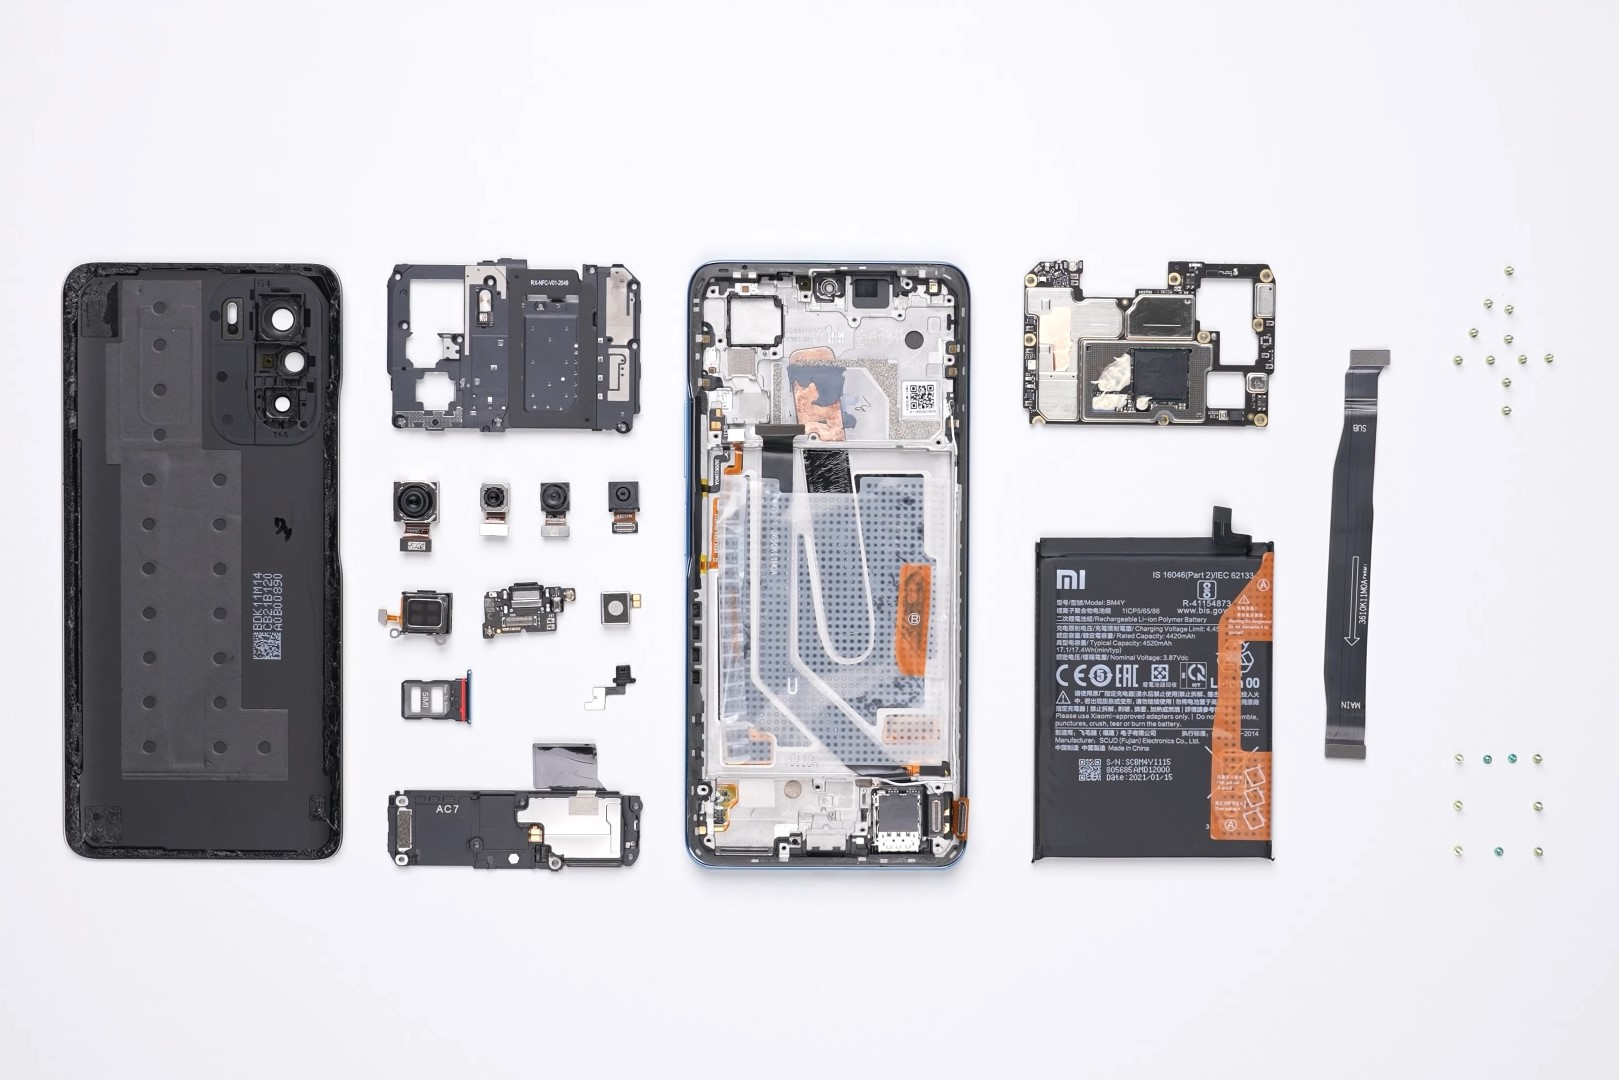 Redmi K40 and Redmi K40 Pro teardown video reveals Xiaomi's LiquidCool Technology heat dissipation solution and modular camera hardware